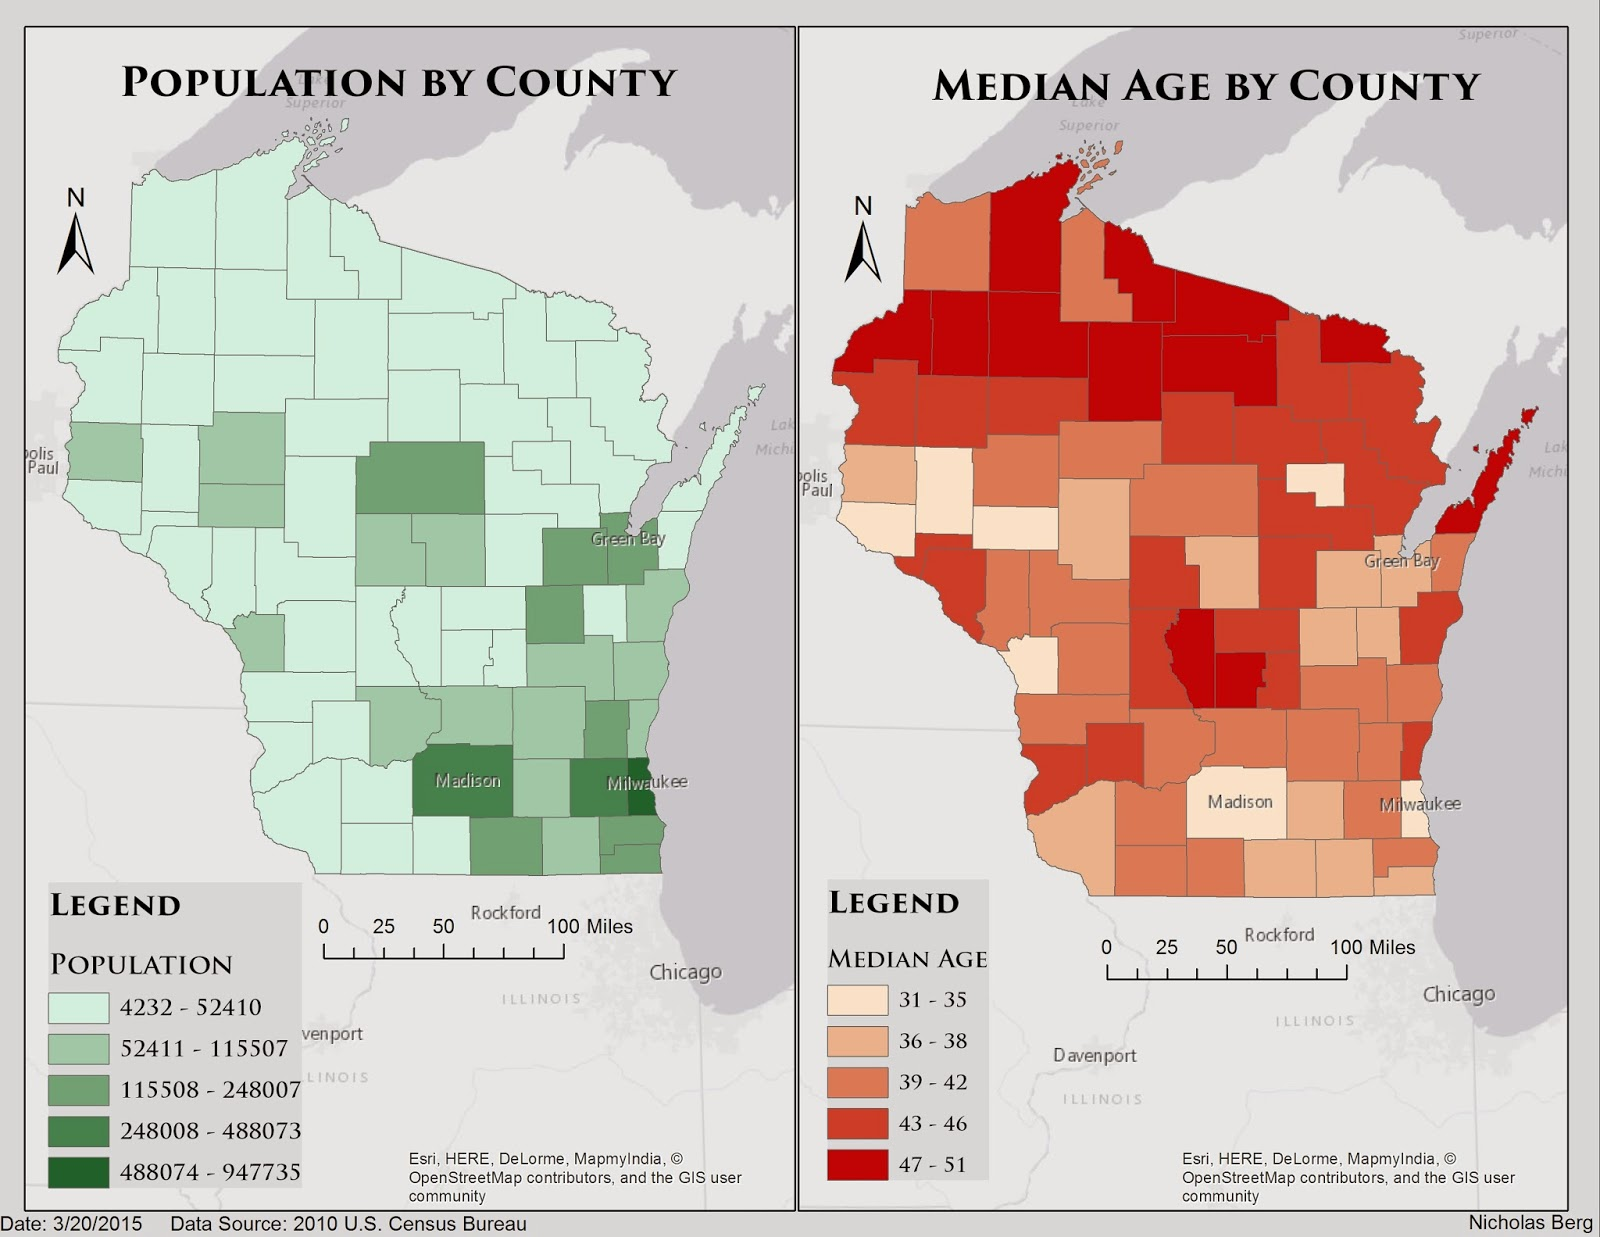 figure 2 1 the map on the left presents the population of each county while the right map shows the median age by county